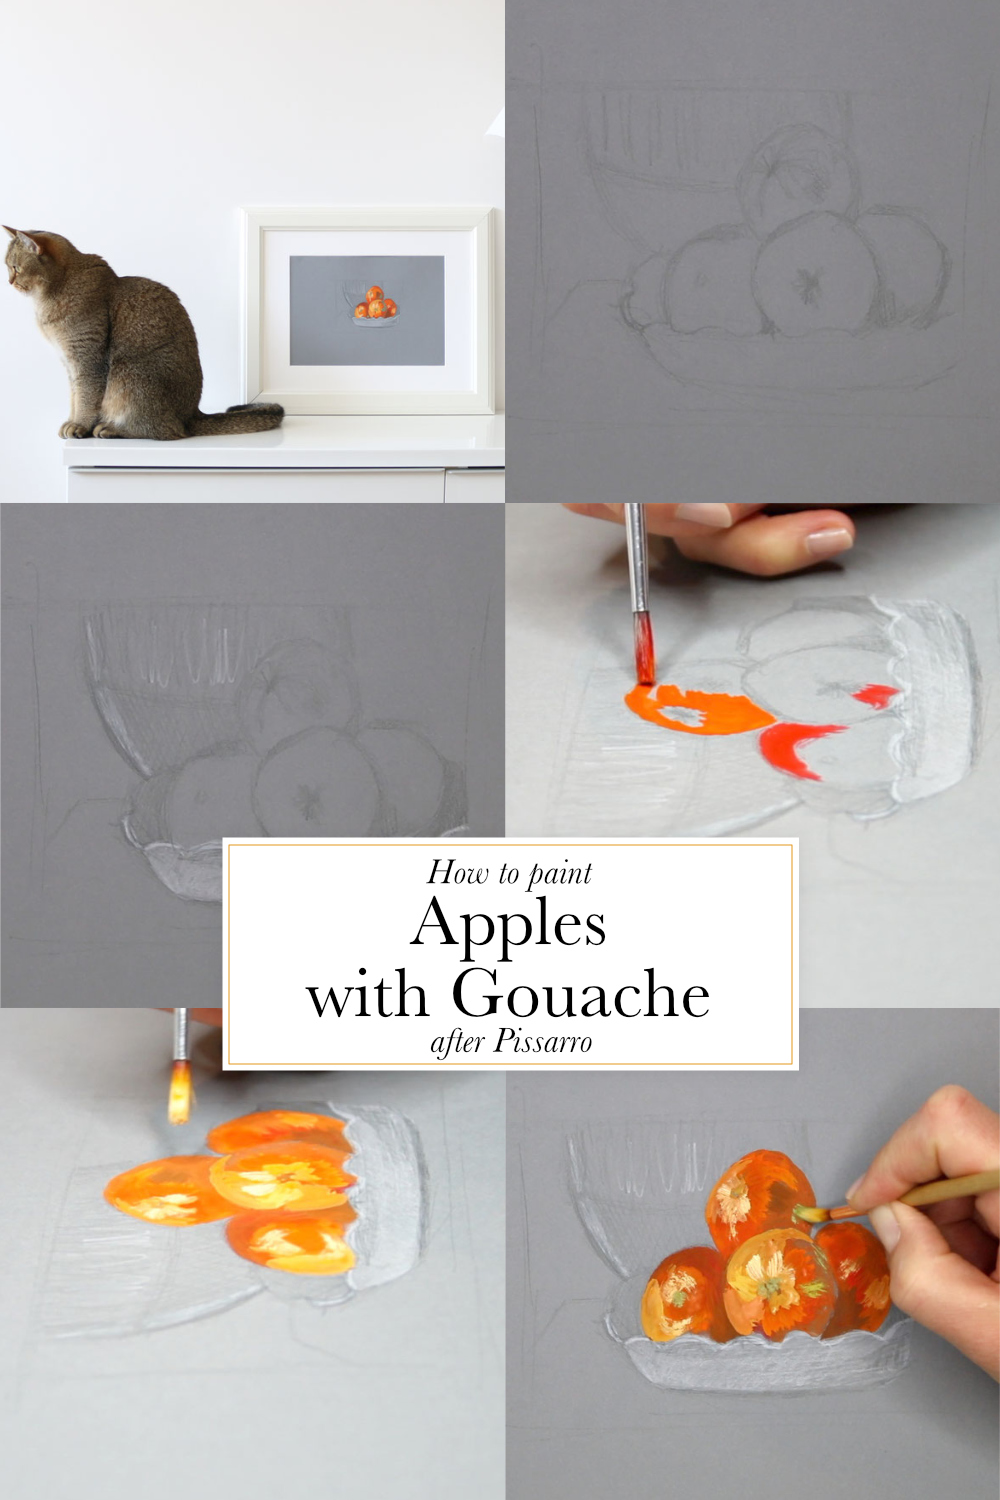 How to paint Apples with gouache after Pissarro    The Daily Atelier